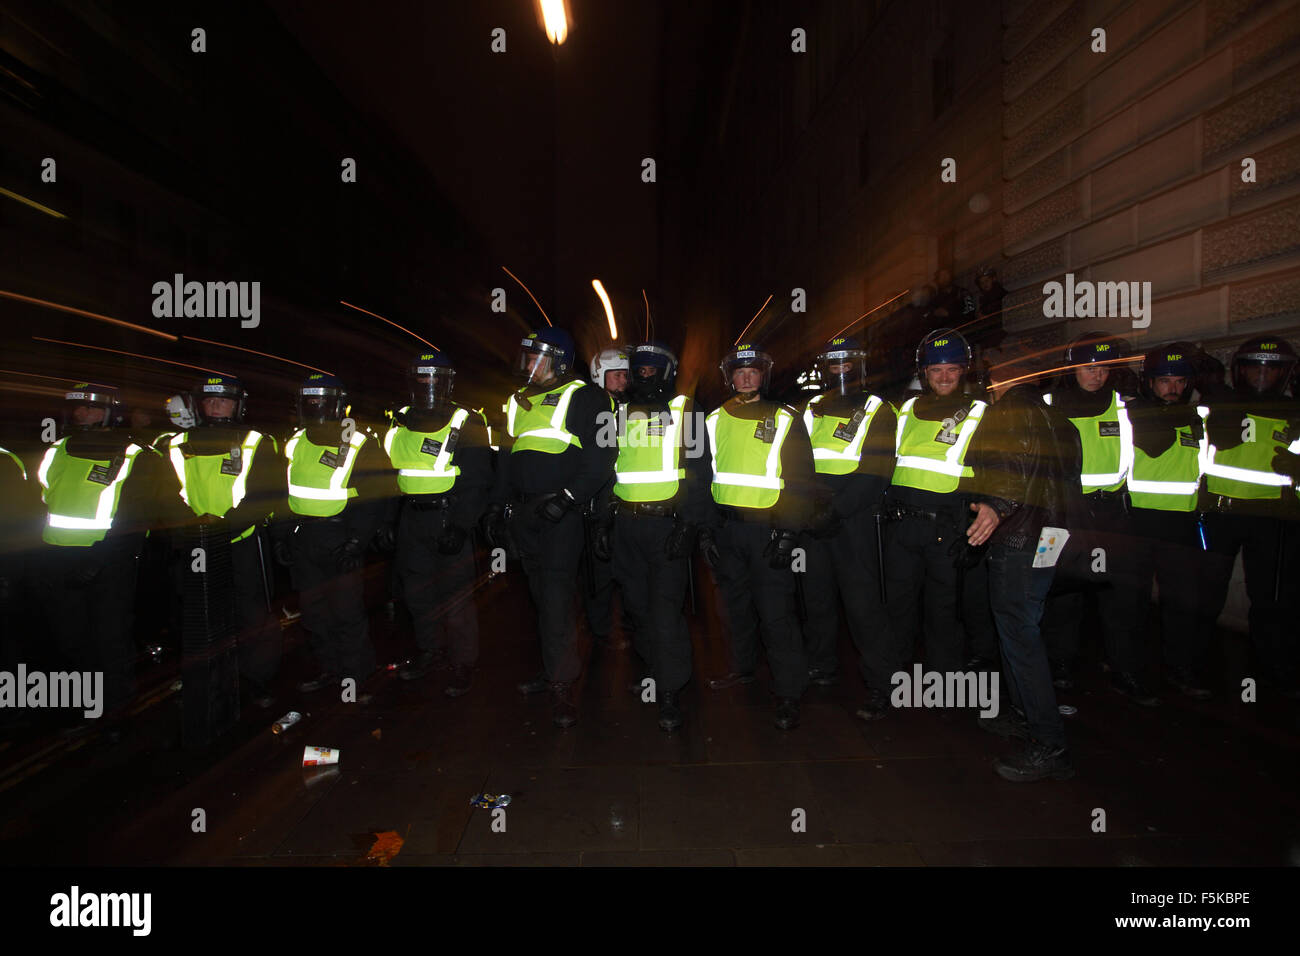 London, UK. 5th November, 2015. Central London Thousands attend Million Mask March in London UK as there were hightened - Stock Image